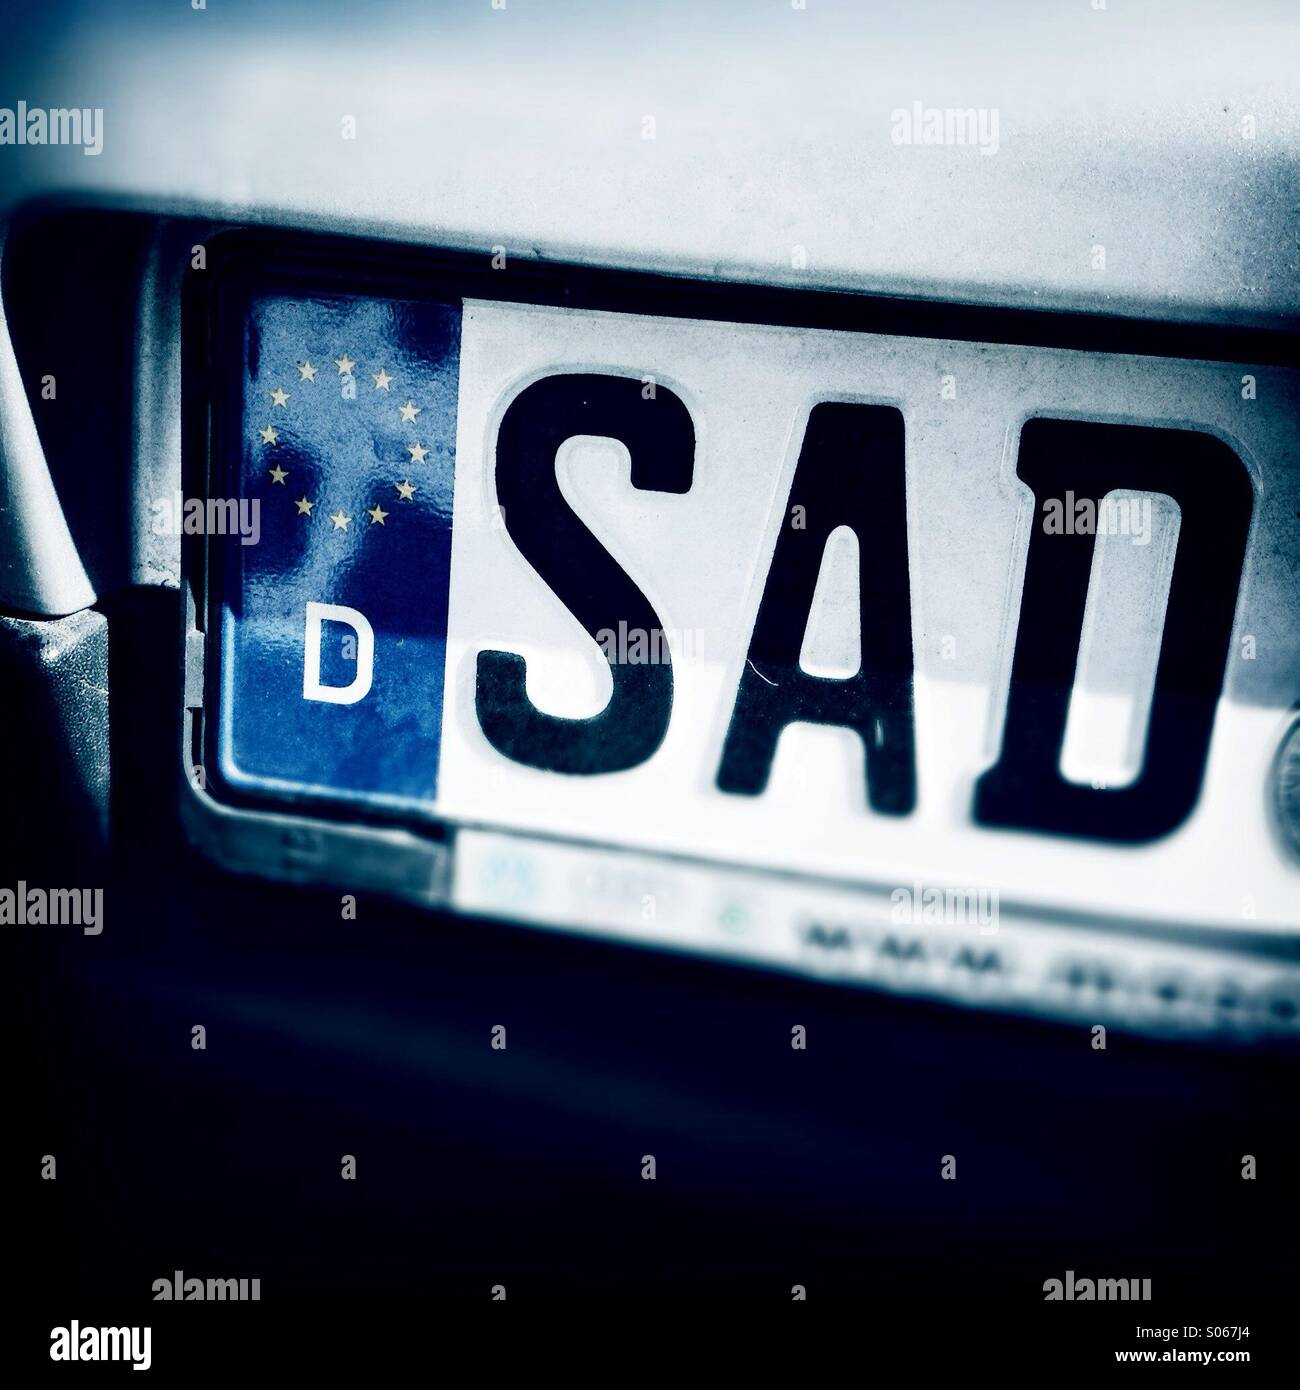 Sad letters. License plate of Schwandorf, Bayern, Germany, Europe Stock Photo